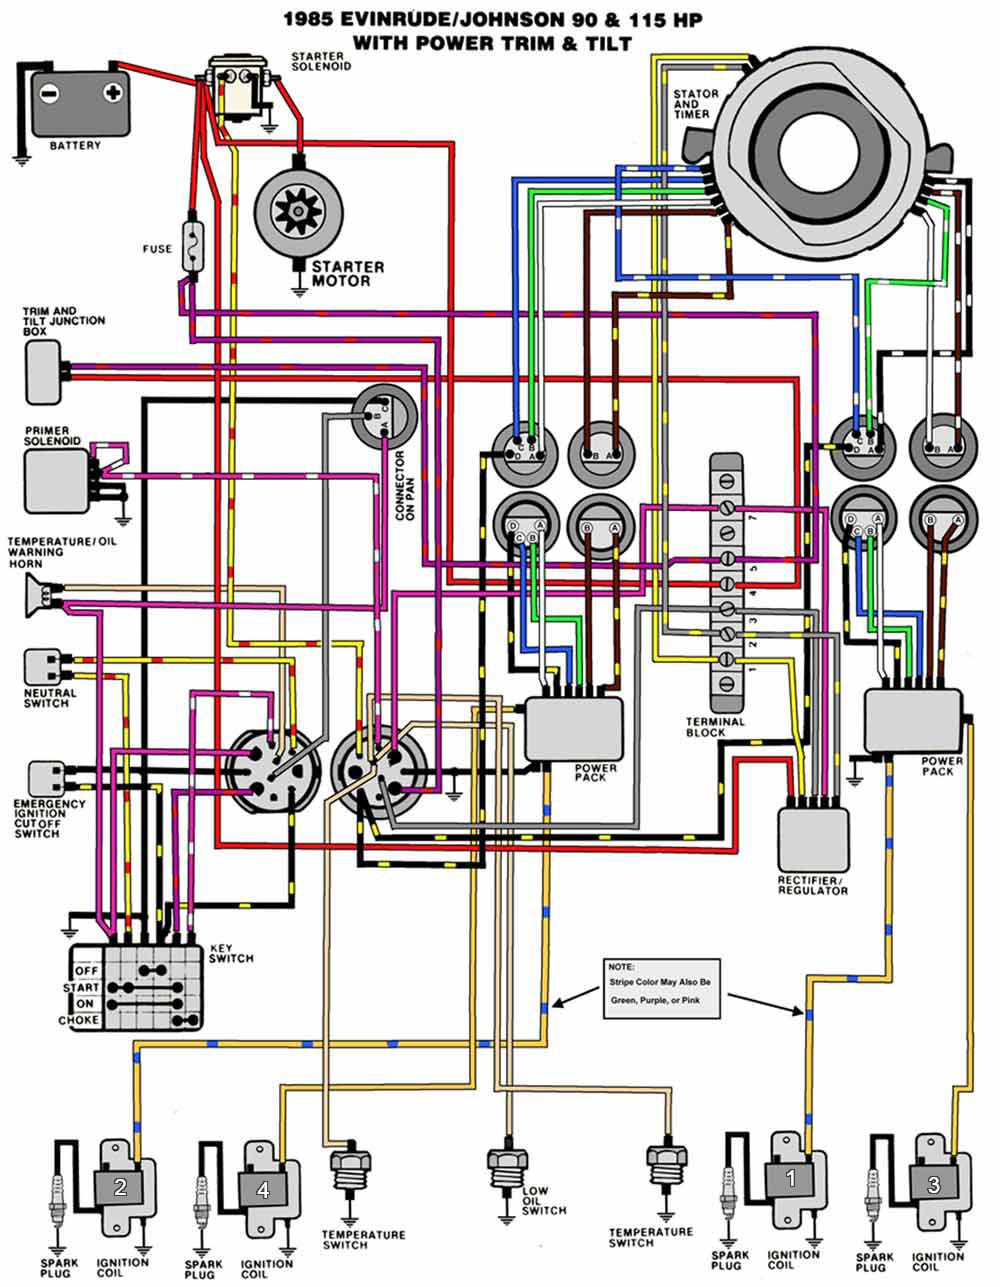 mercury 50 hp wiring diagram wiring libraryjohnson outboard motor wiring diagram motorwallpapers org rh motorwallpapers org [ 1000 x 1287 Pixel ]